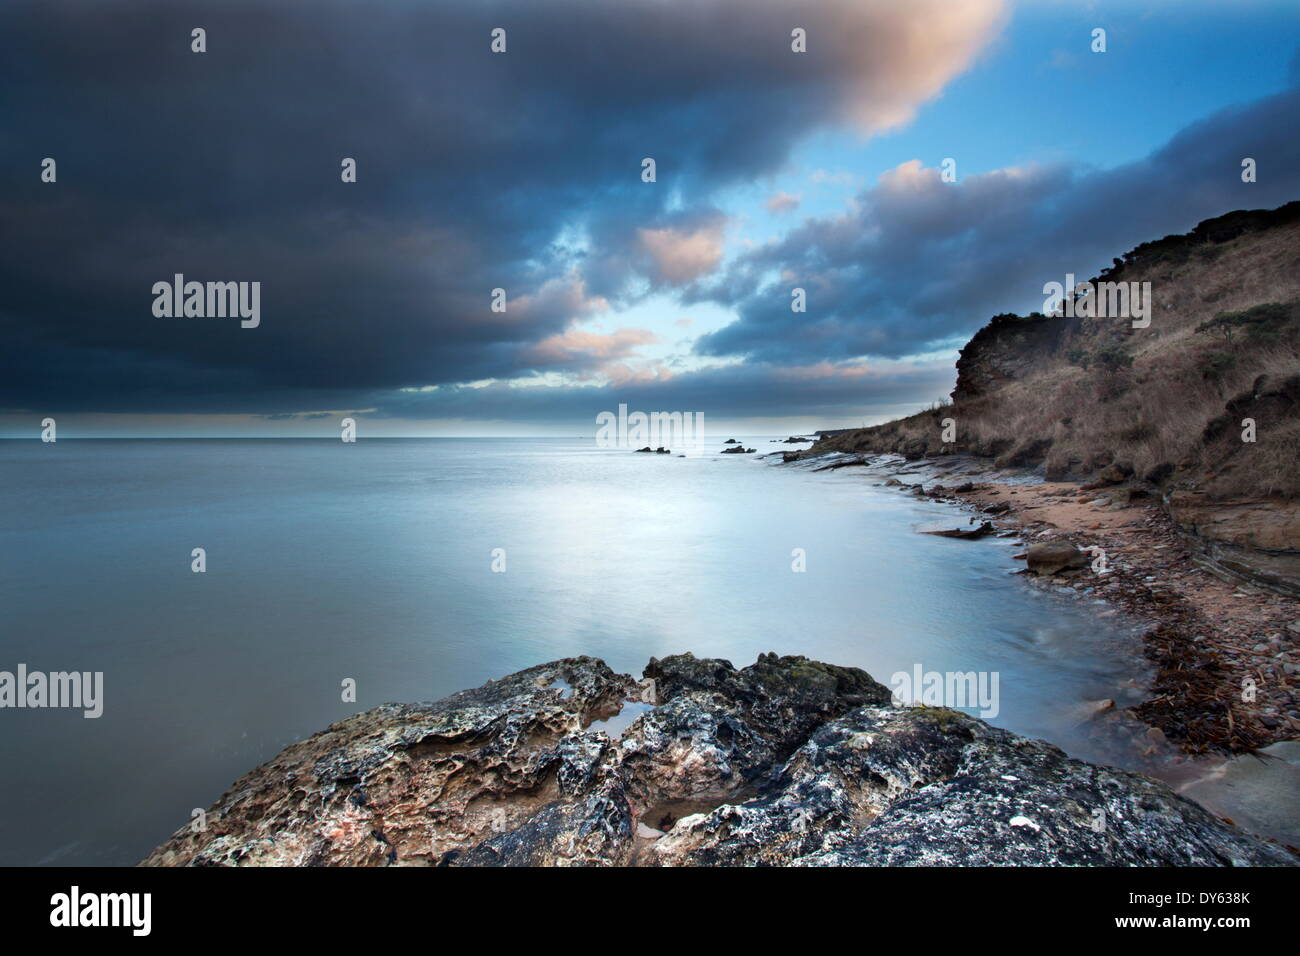 Fife coast at dusk near St. Andrews, Fife, Scotland, United Kingdom, Europe - Stock Image